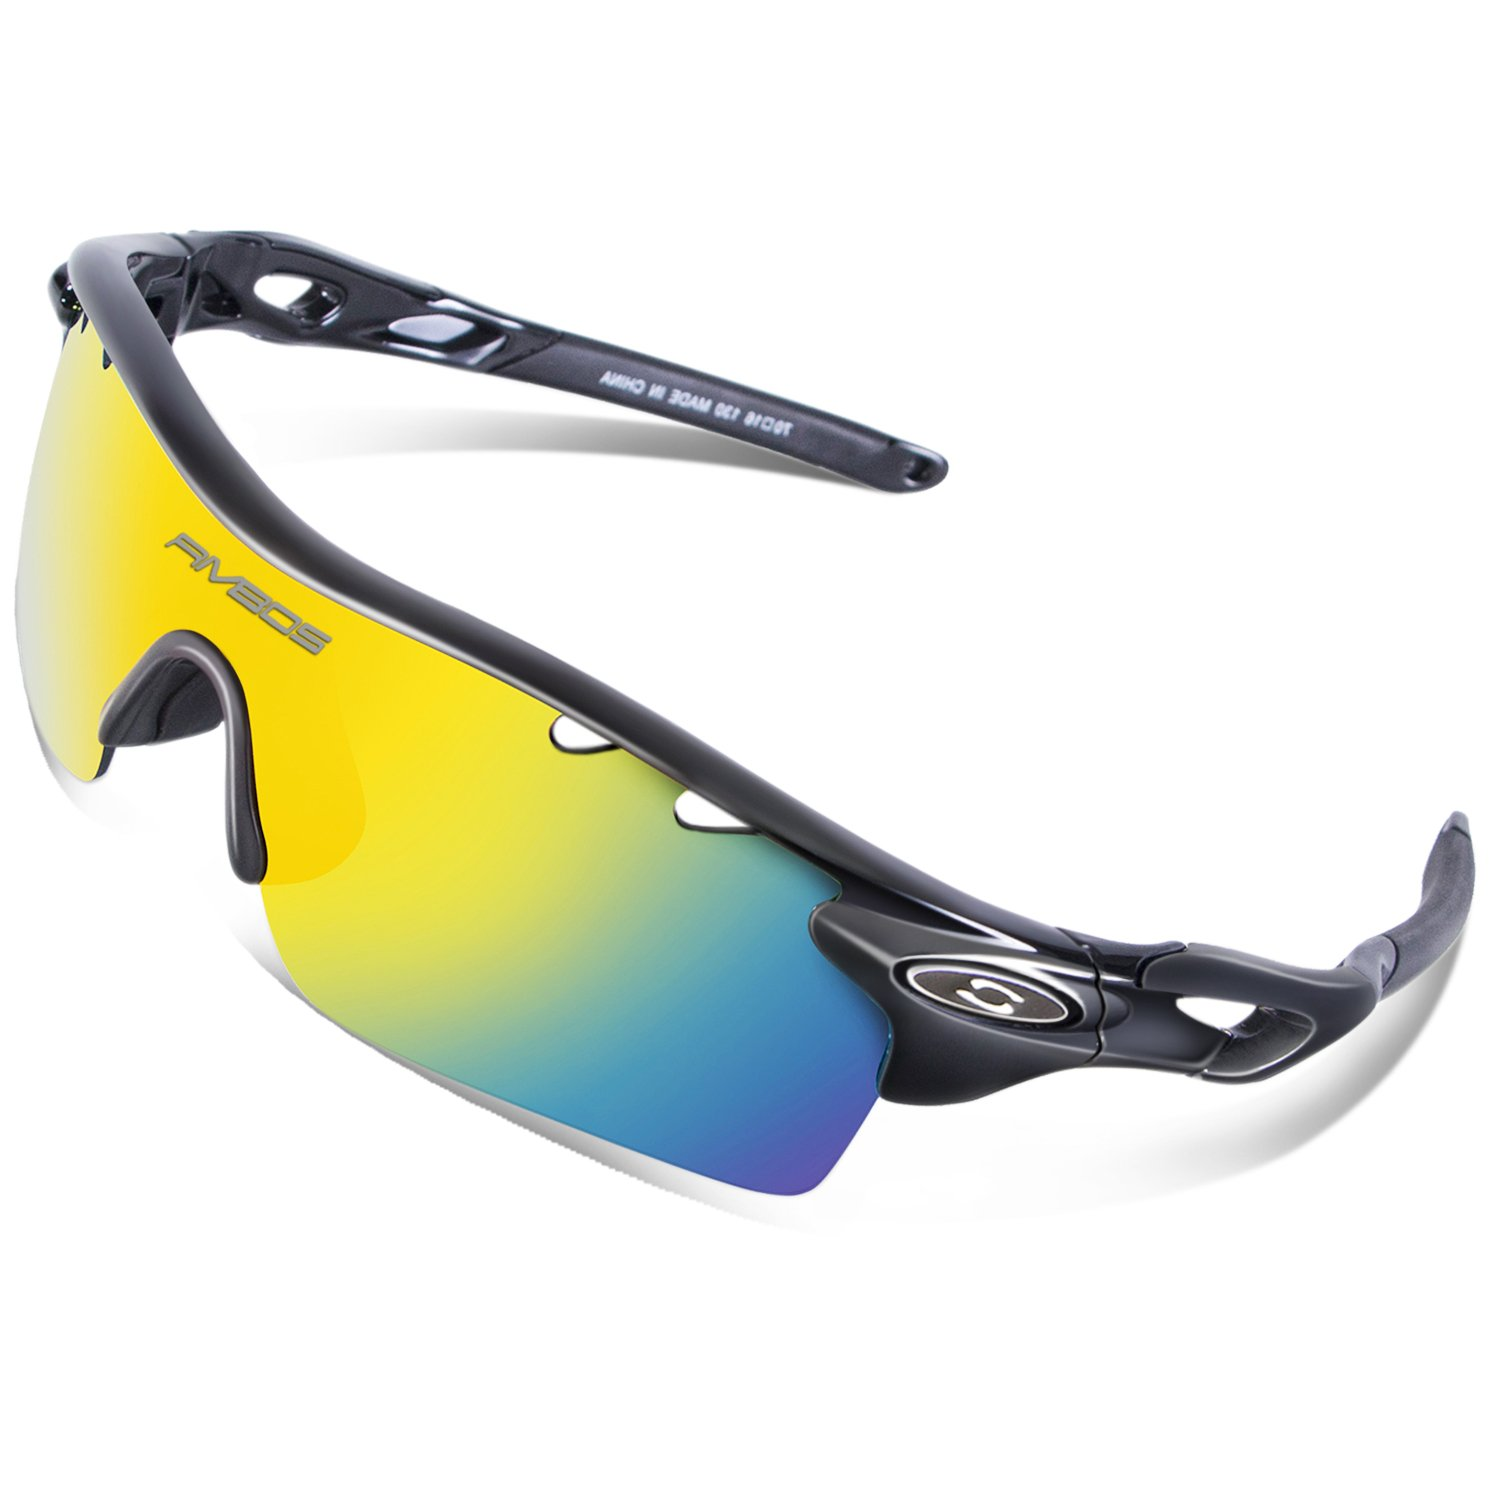 603fcb93f99 Details about RIVBOS 801 TR 90 Polarized Sports Sunglasses Sun Glasses with  5 Interchangeable